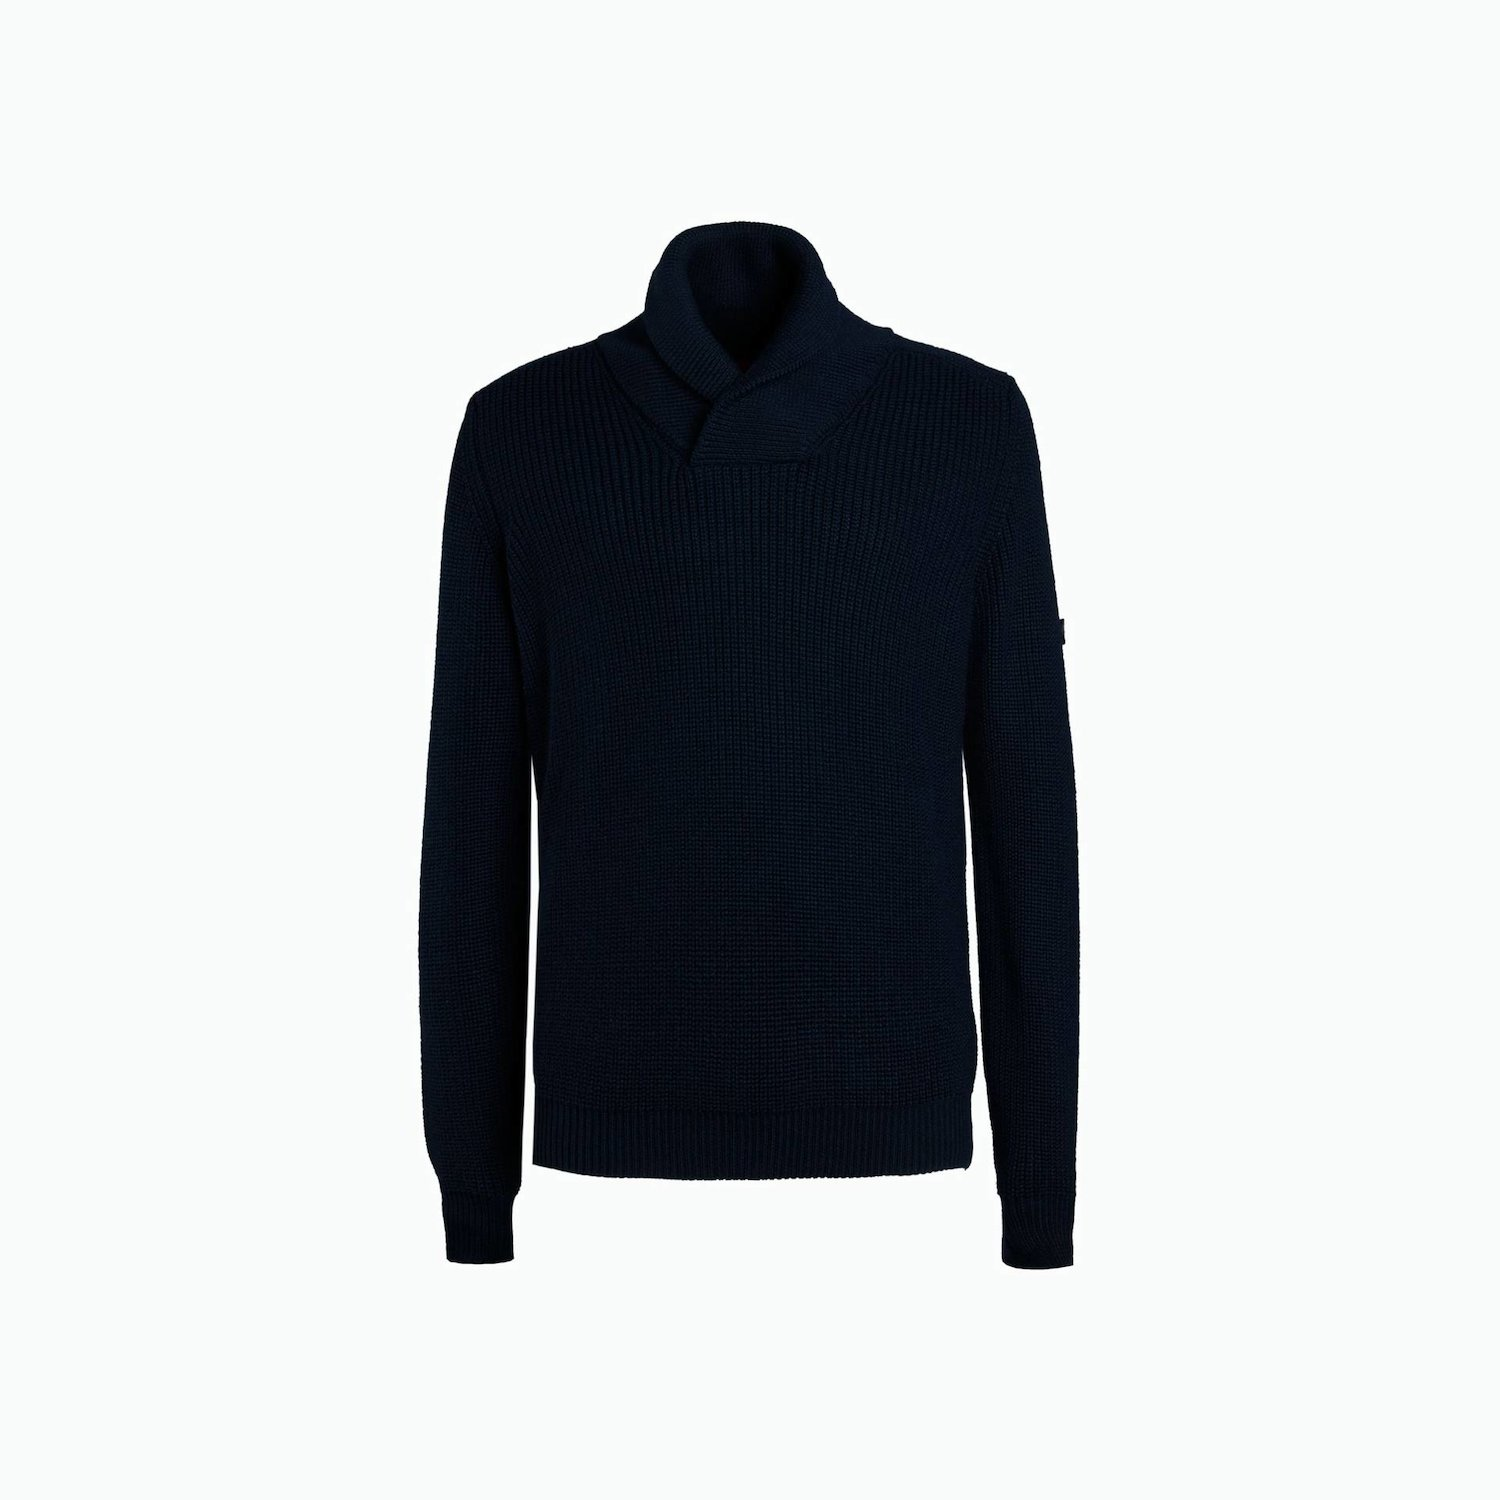 B144 sweater - Navy